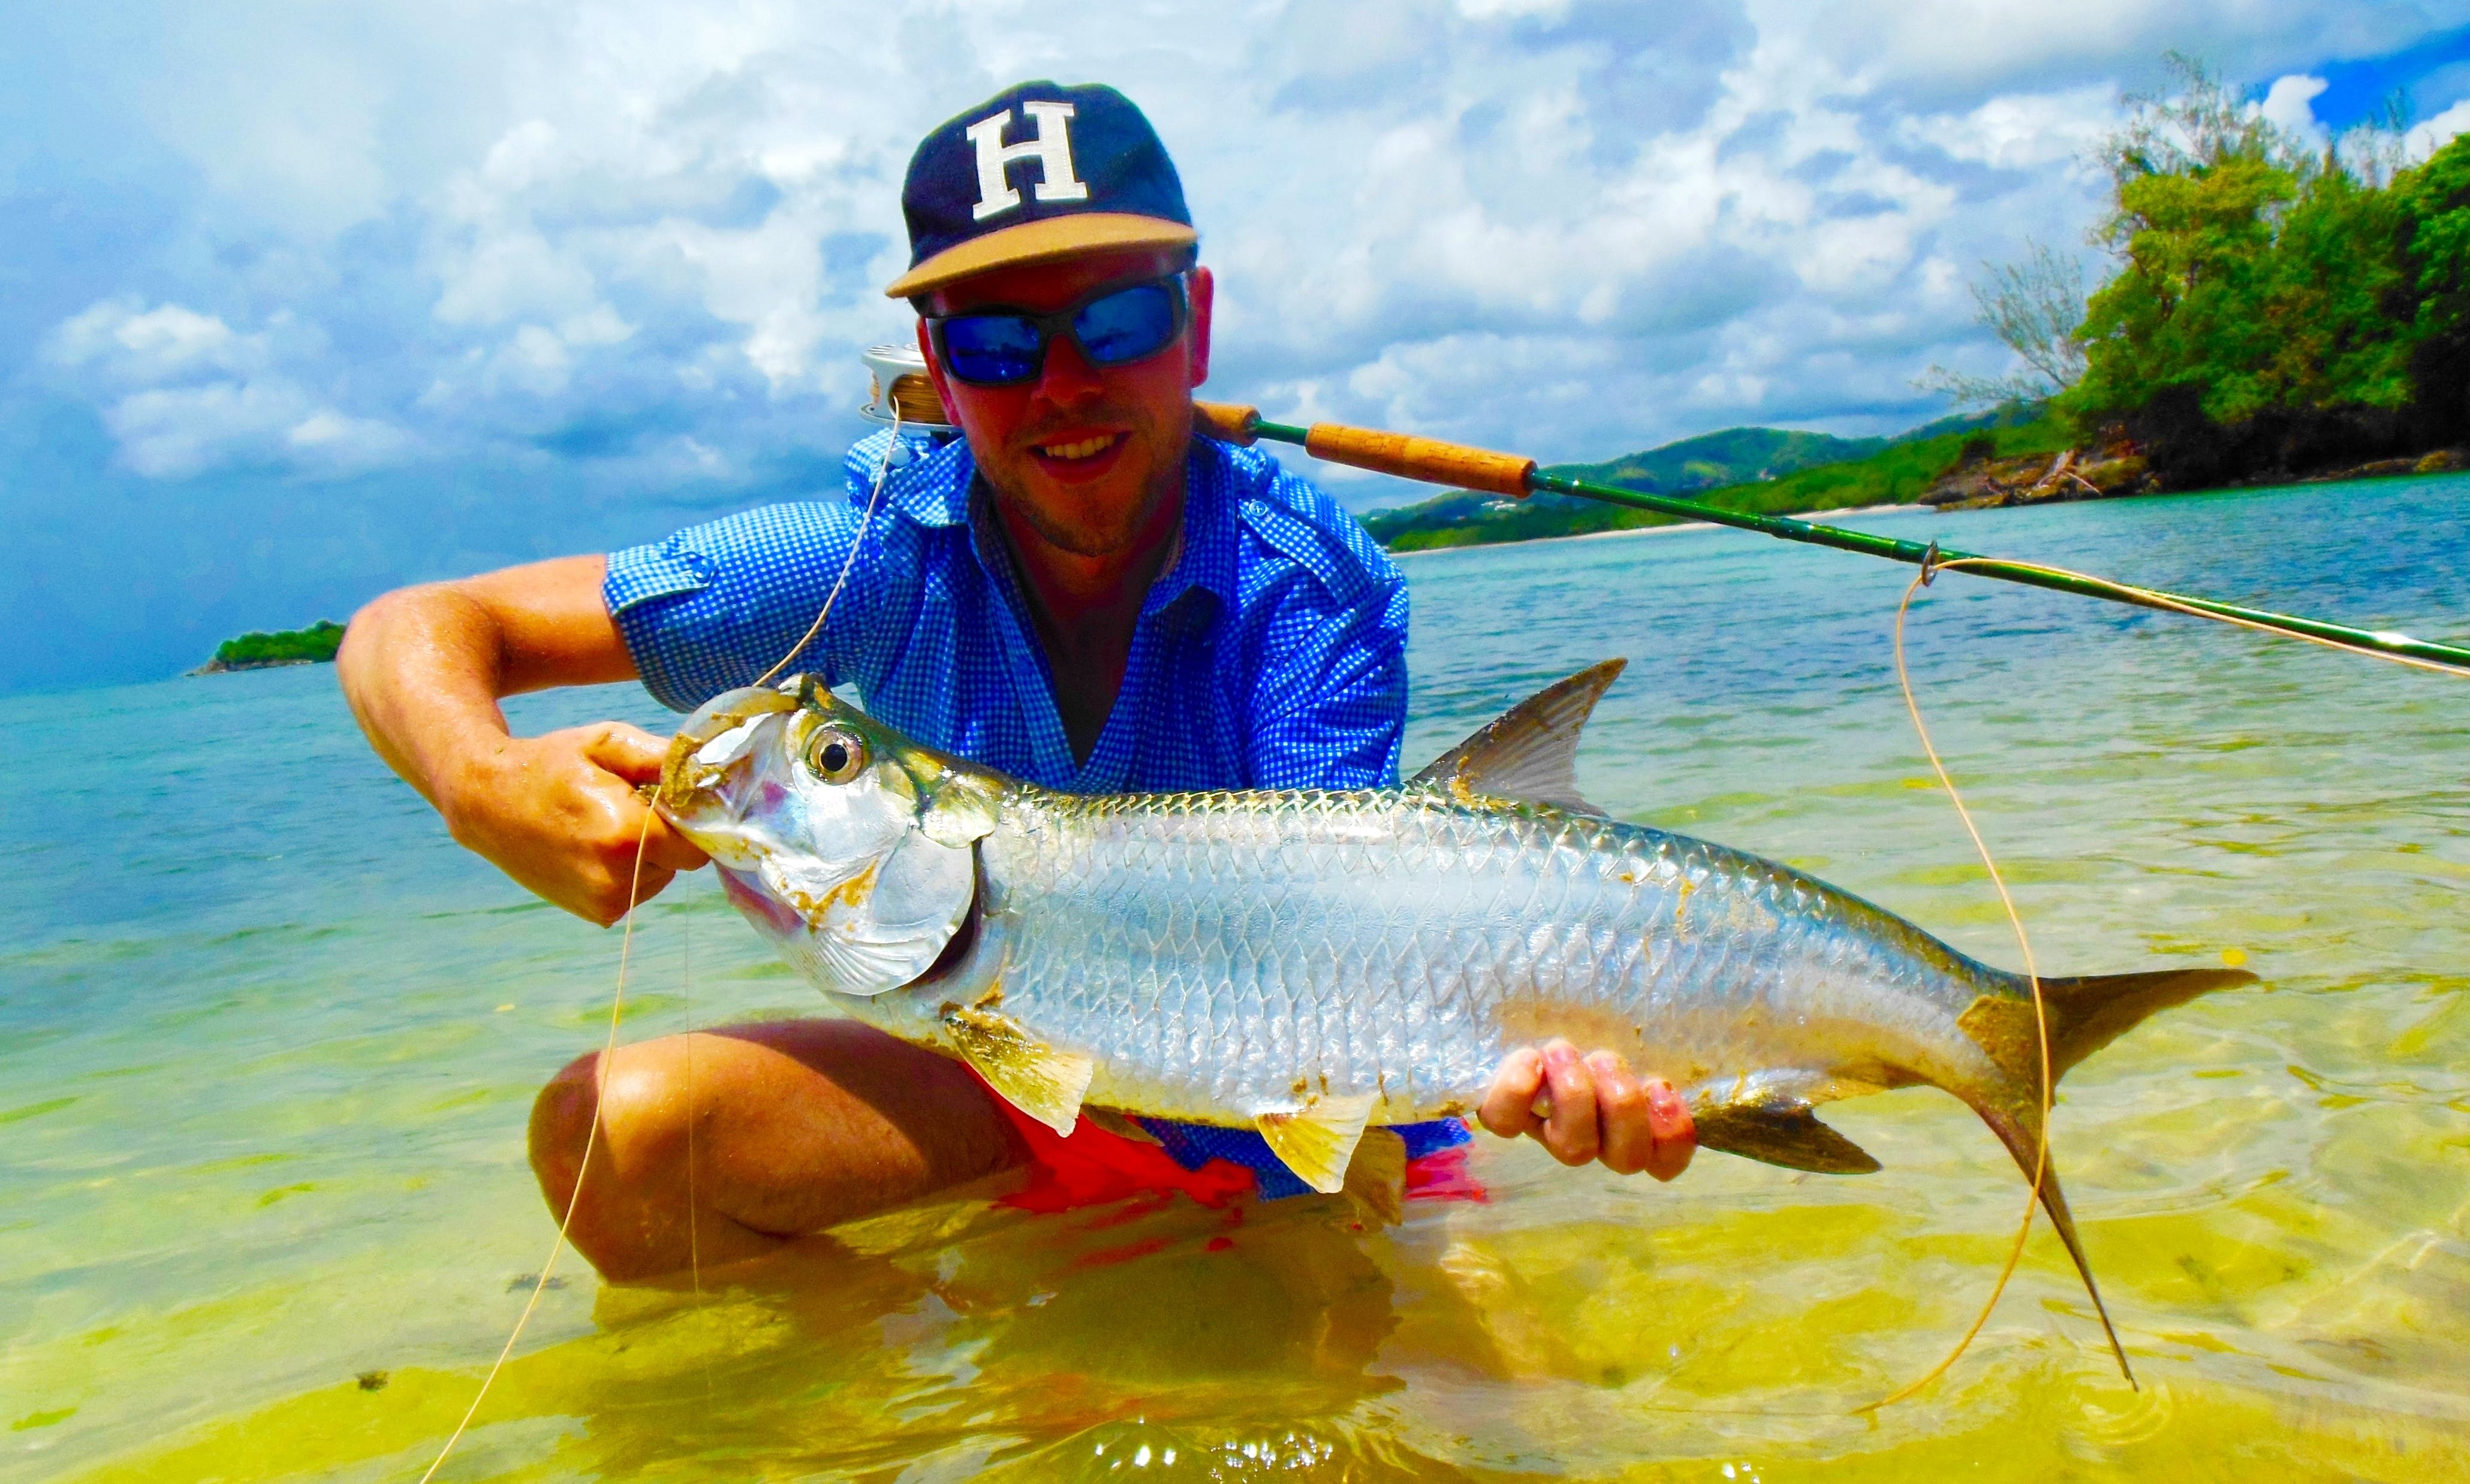 Exciting Snorkeling and Fishing Trip in Buccoo, Trinidad and Tobago for 8 person!